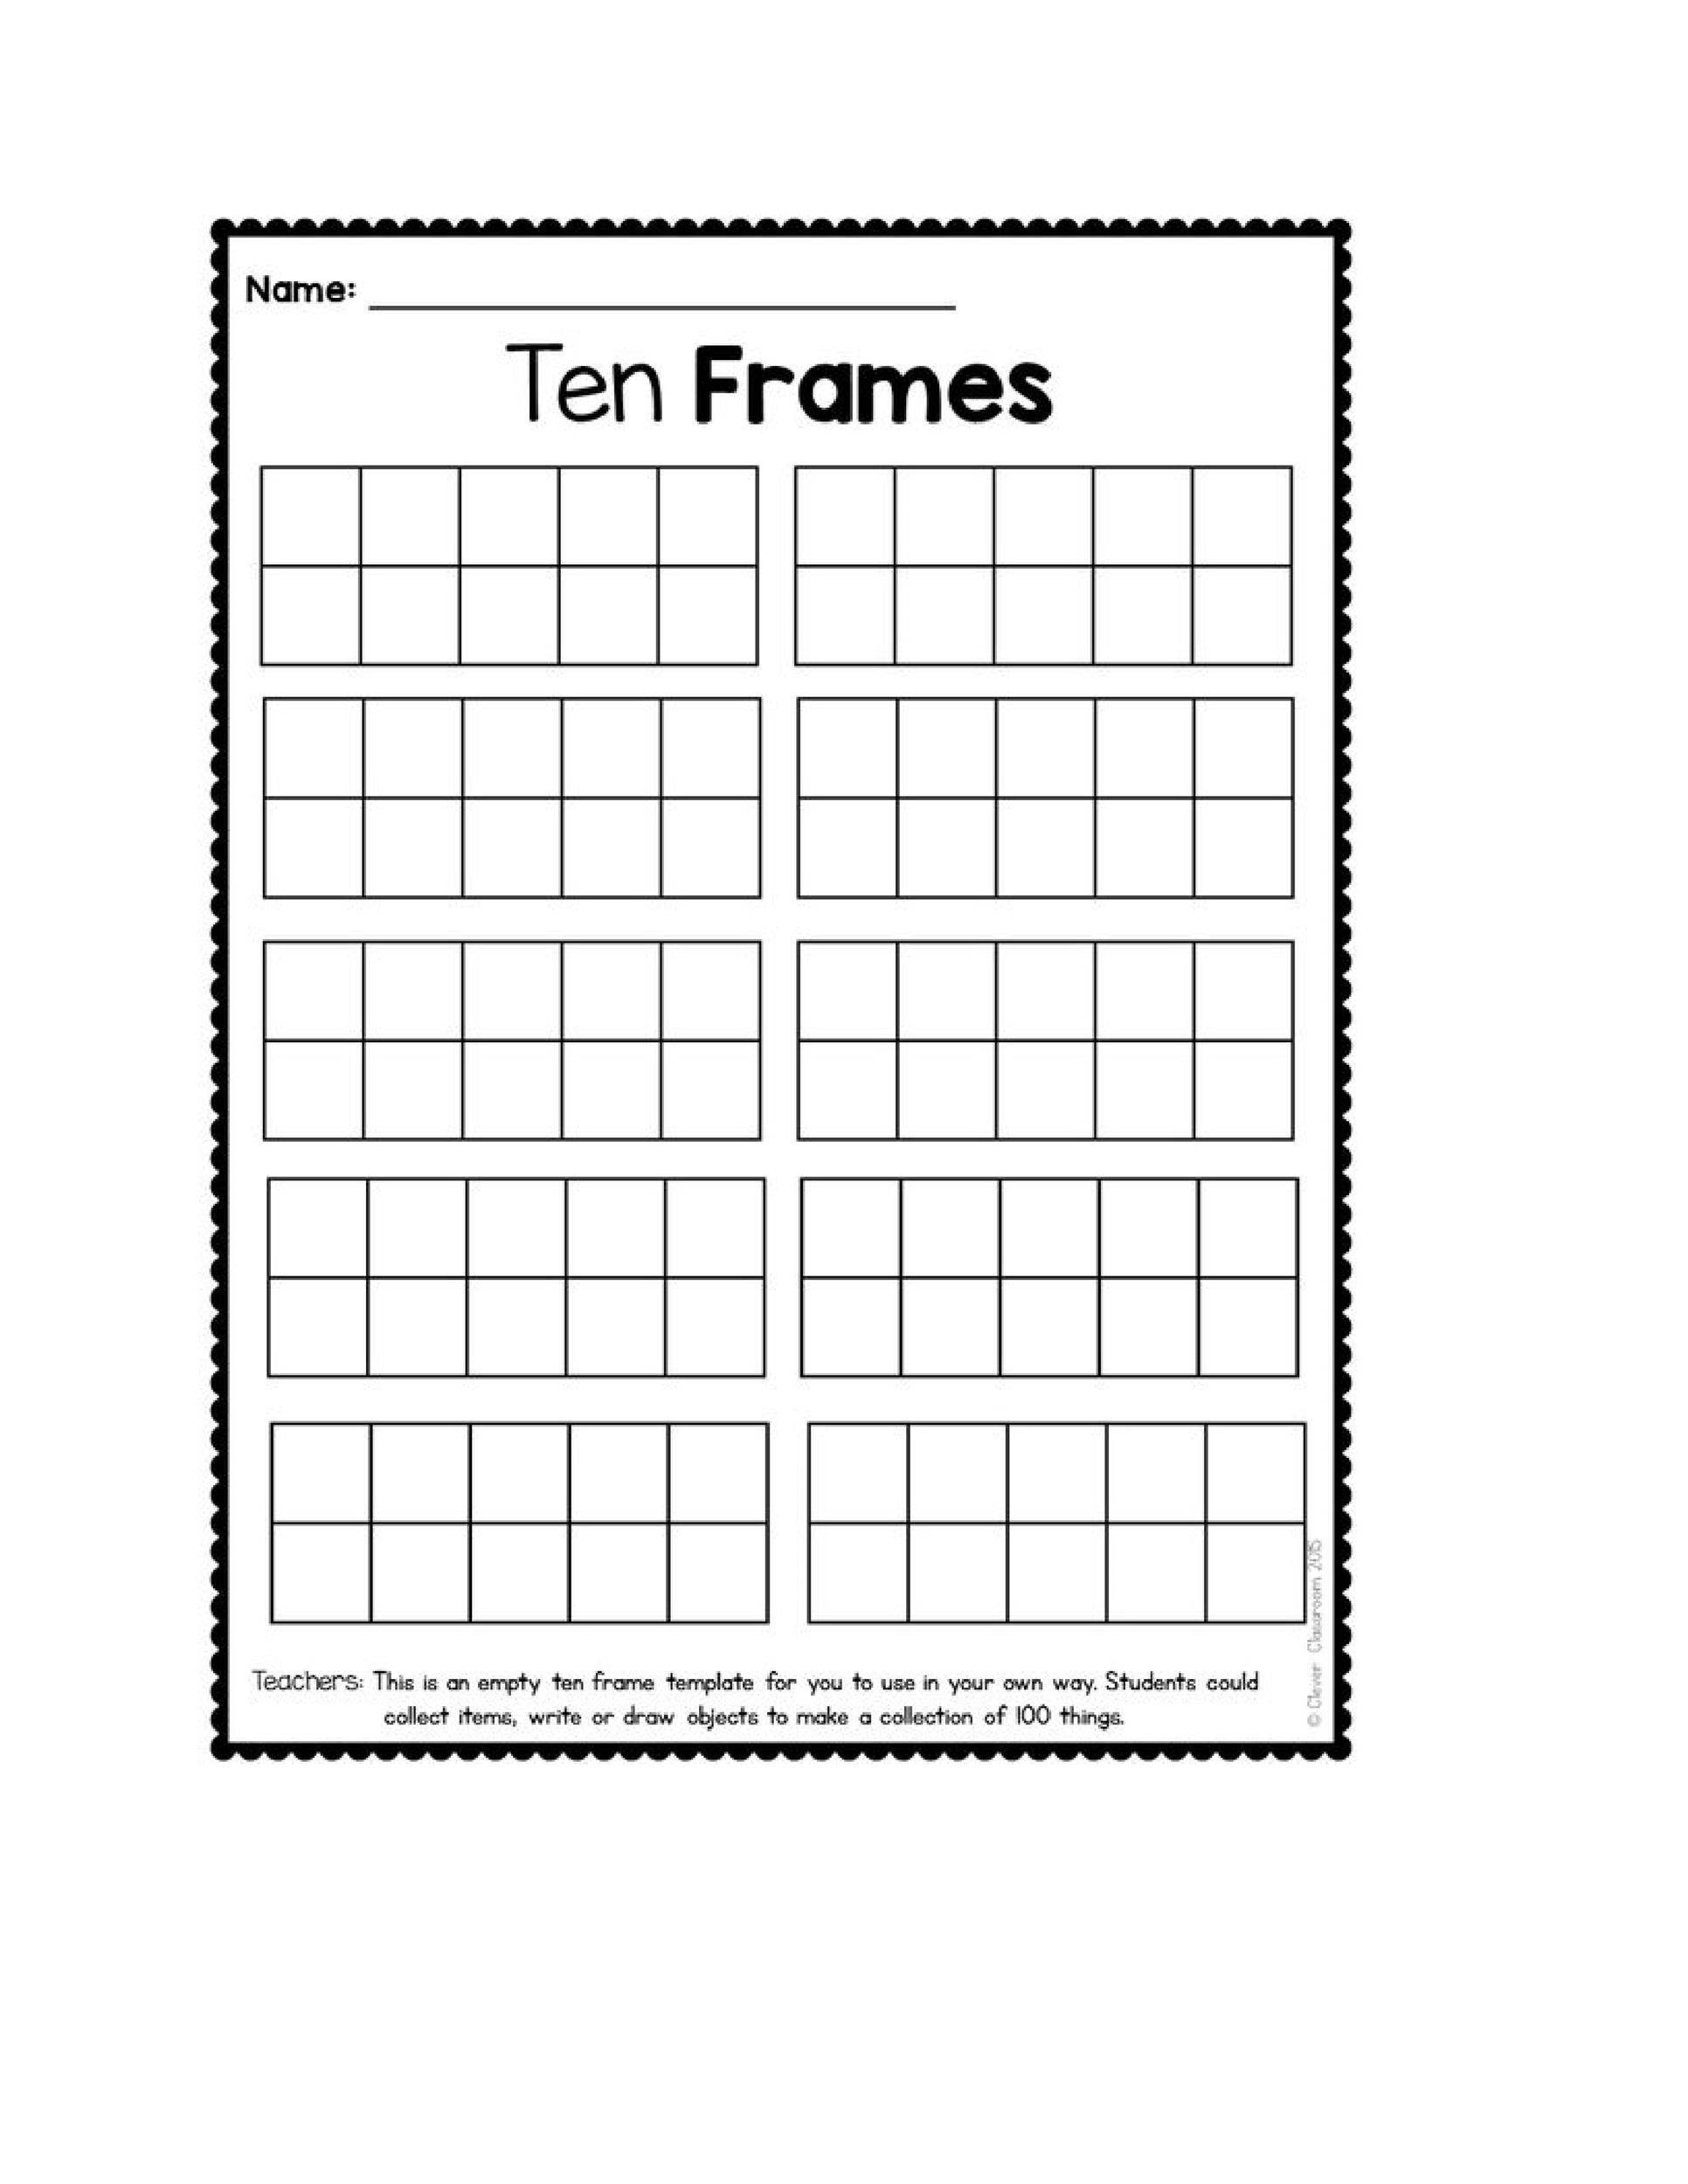 Free Ten Frame Template 02